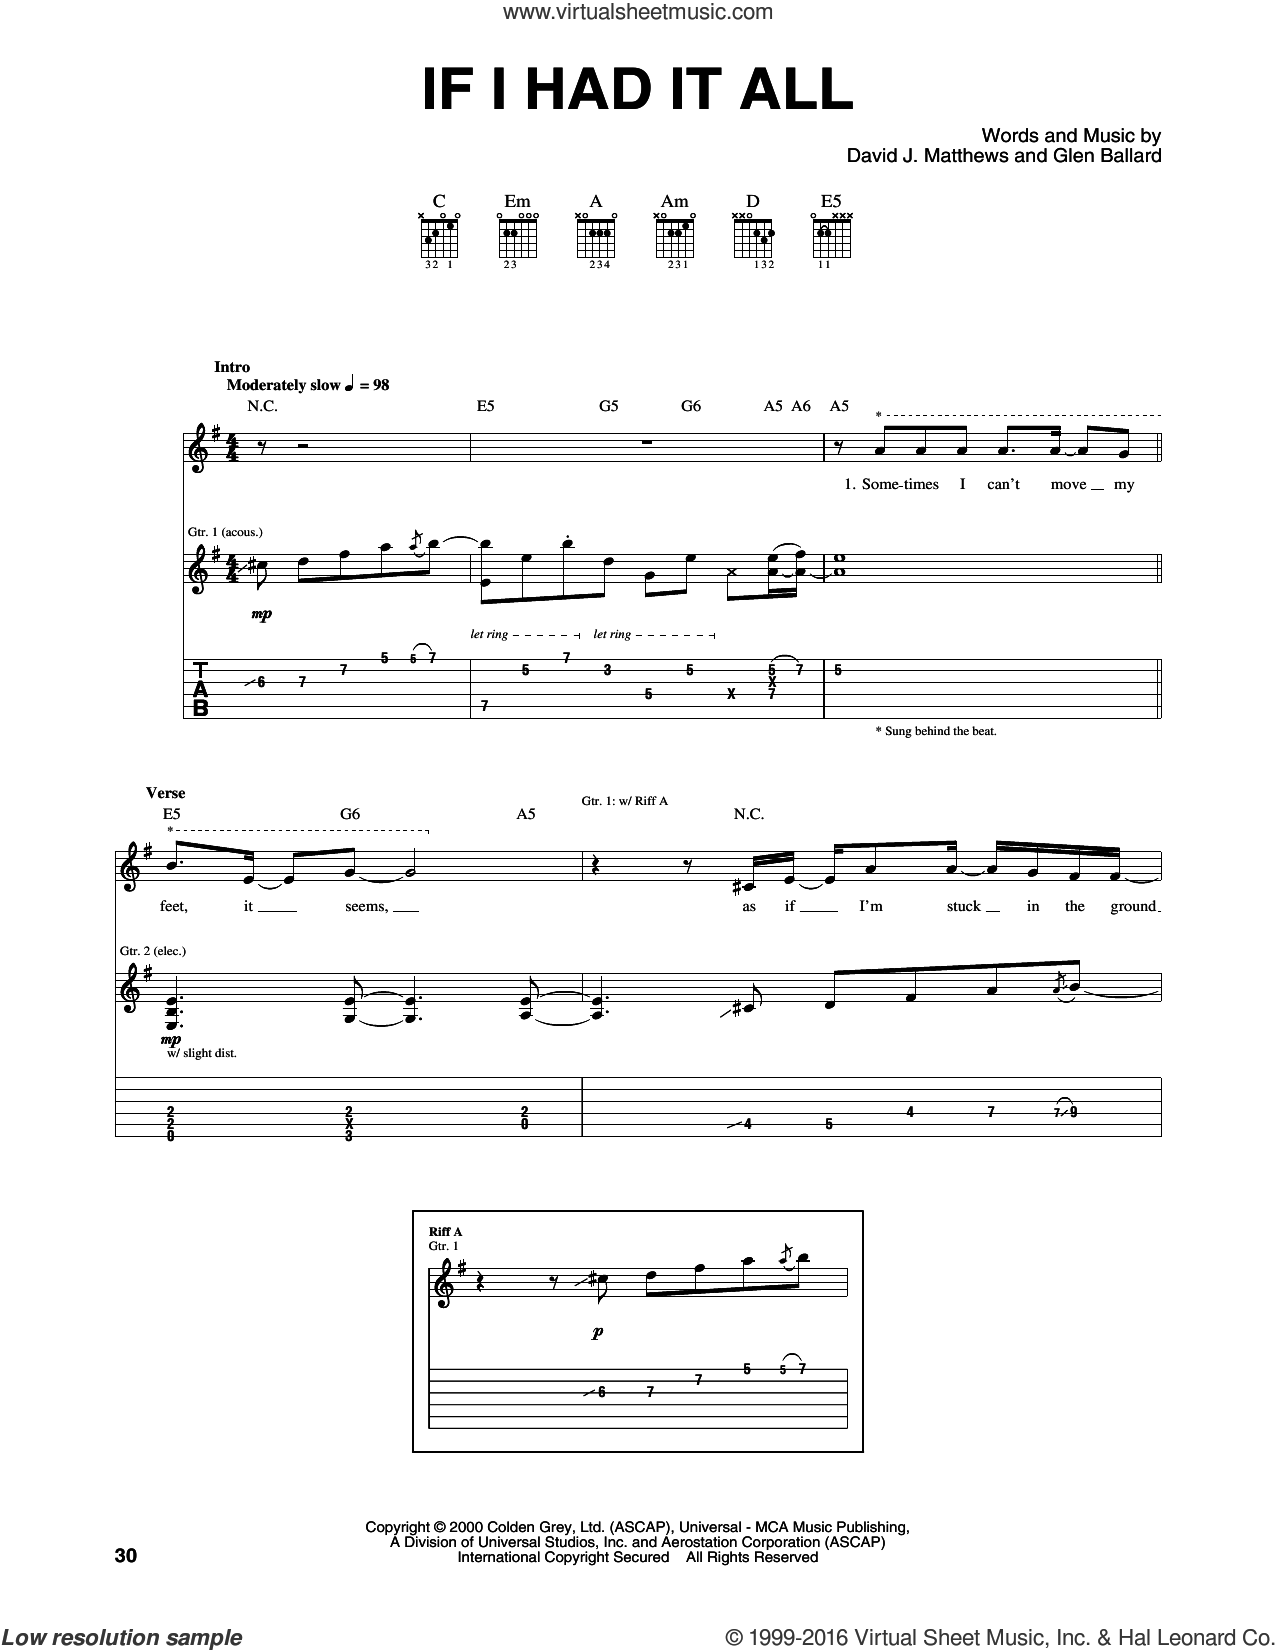 If I Had It All sheet music for guitar (tablature) by Dave Matthews Band and Glen Ballard, intermediate skill level